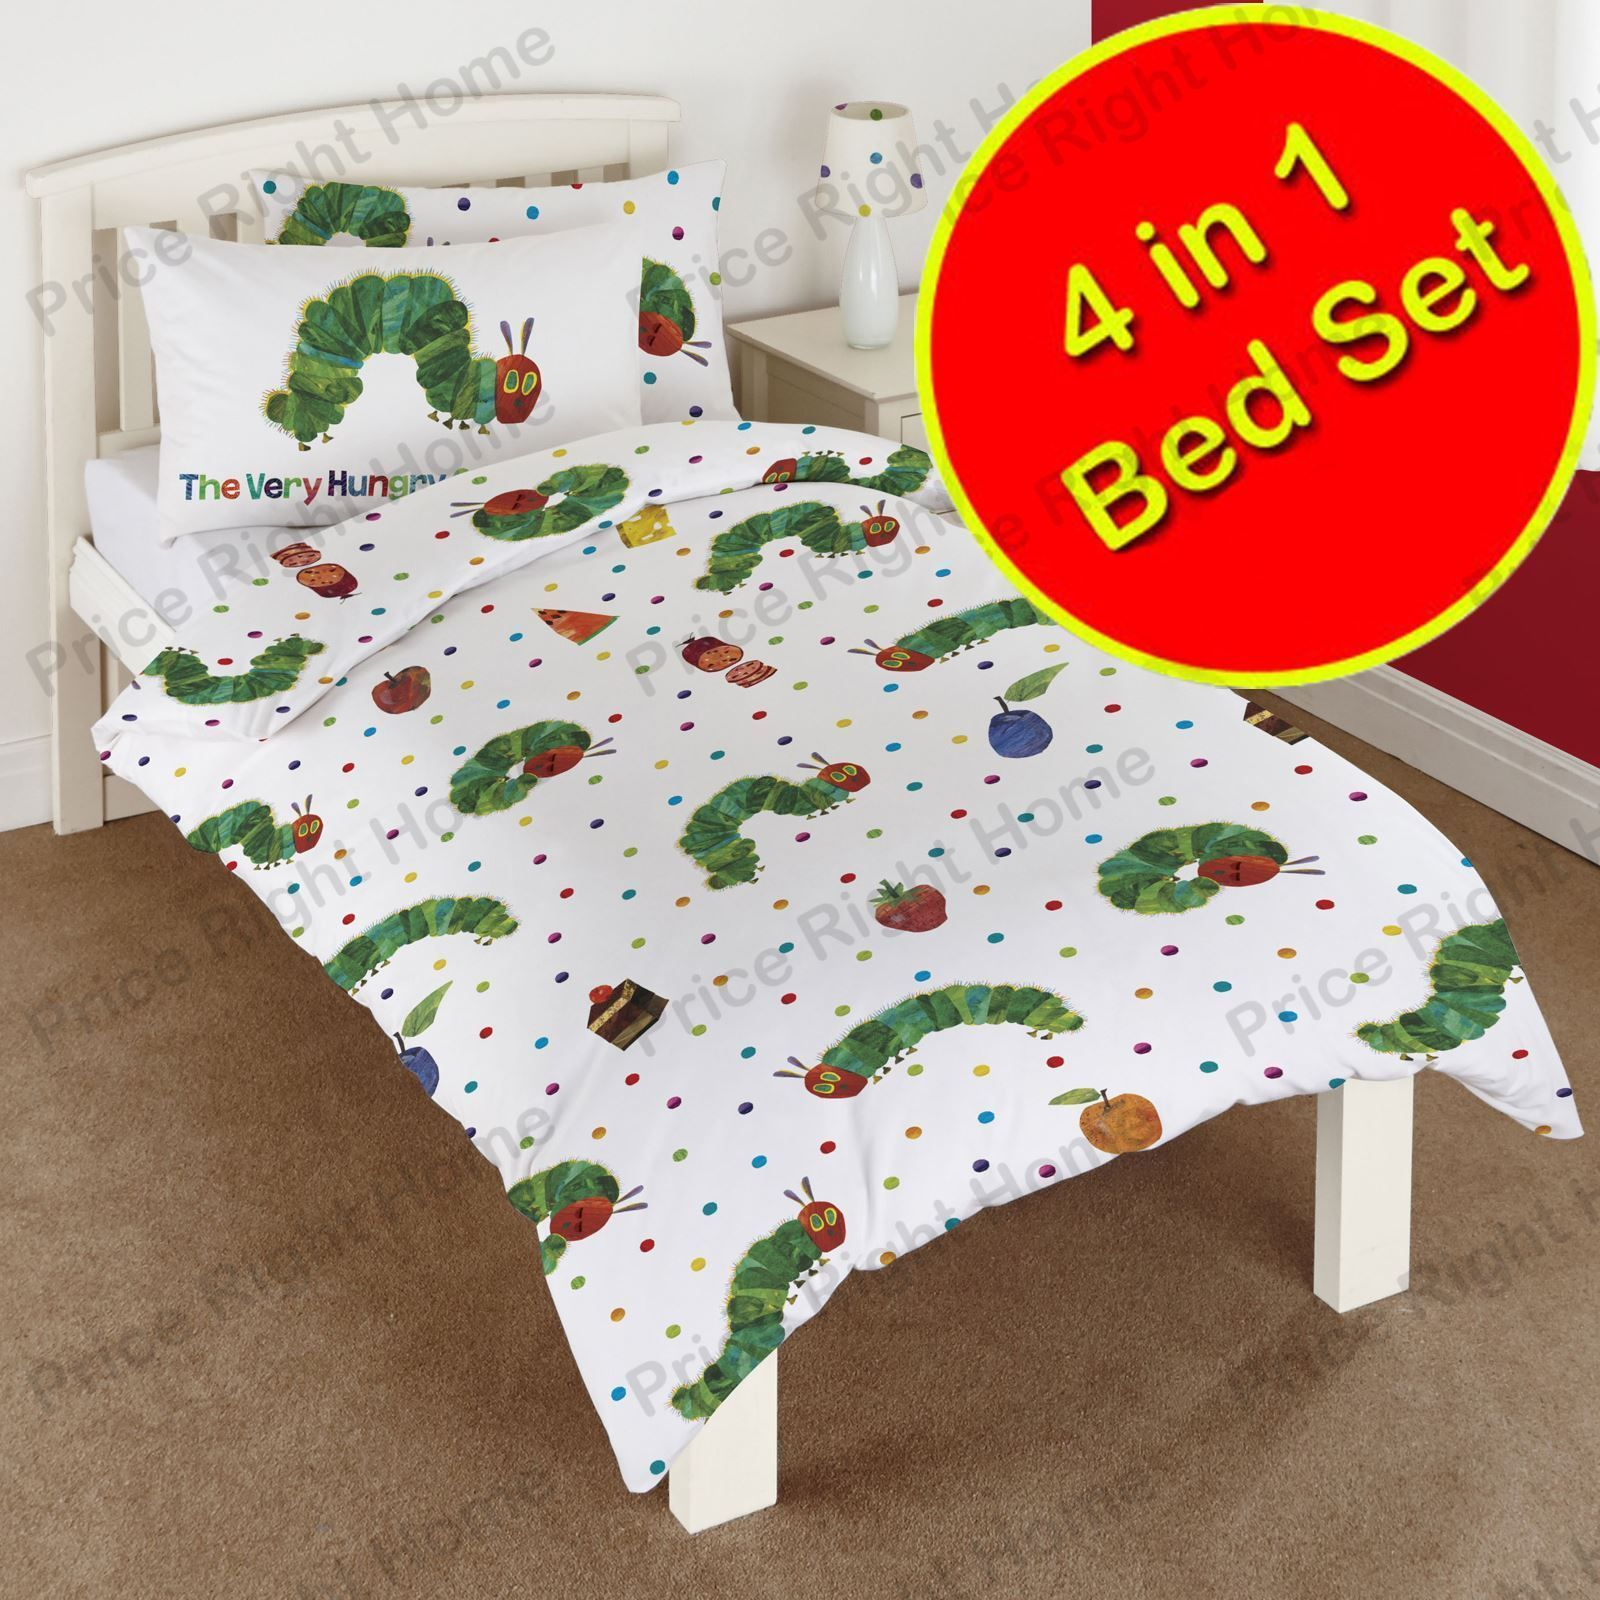 The Very Hungry Caterpillar 4 In 1 Junior Bedding Bundle